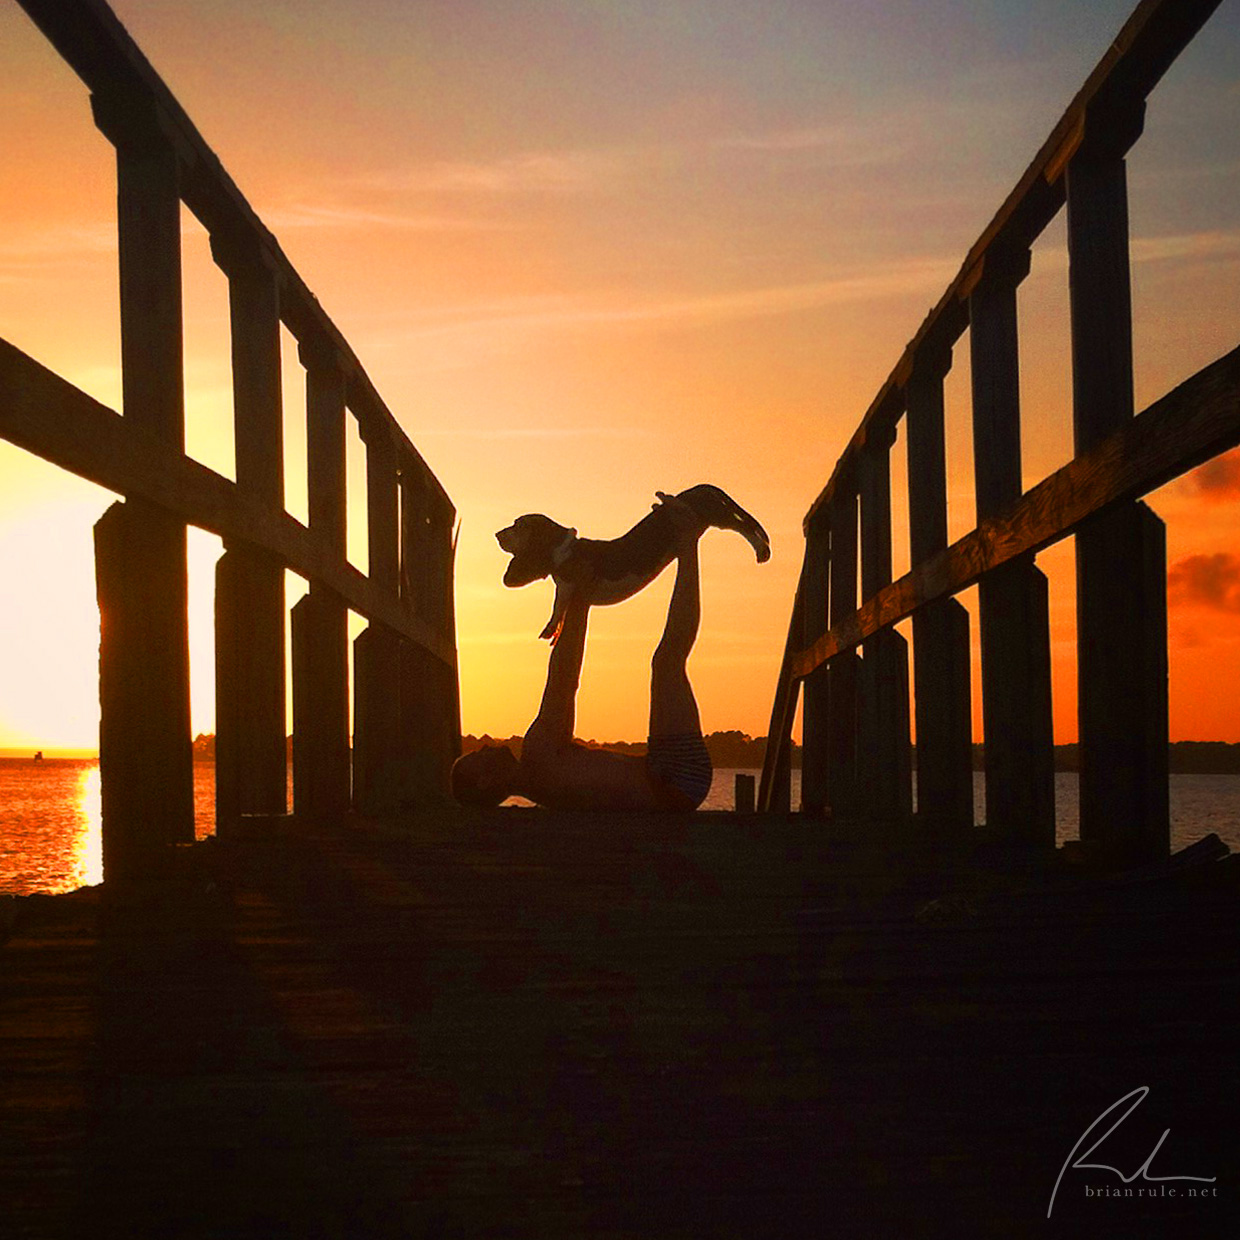 brian-rule-photo-acro-pier